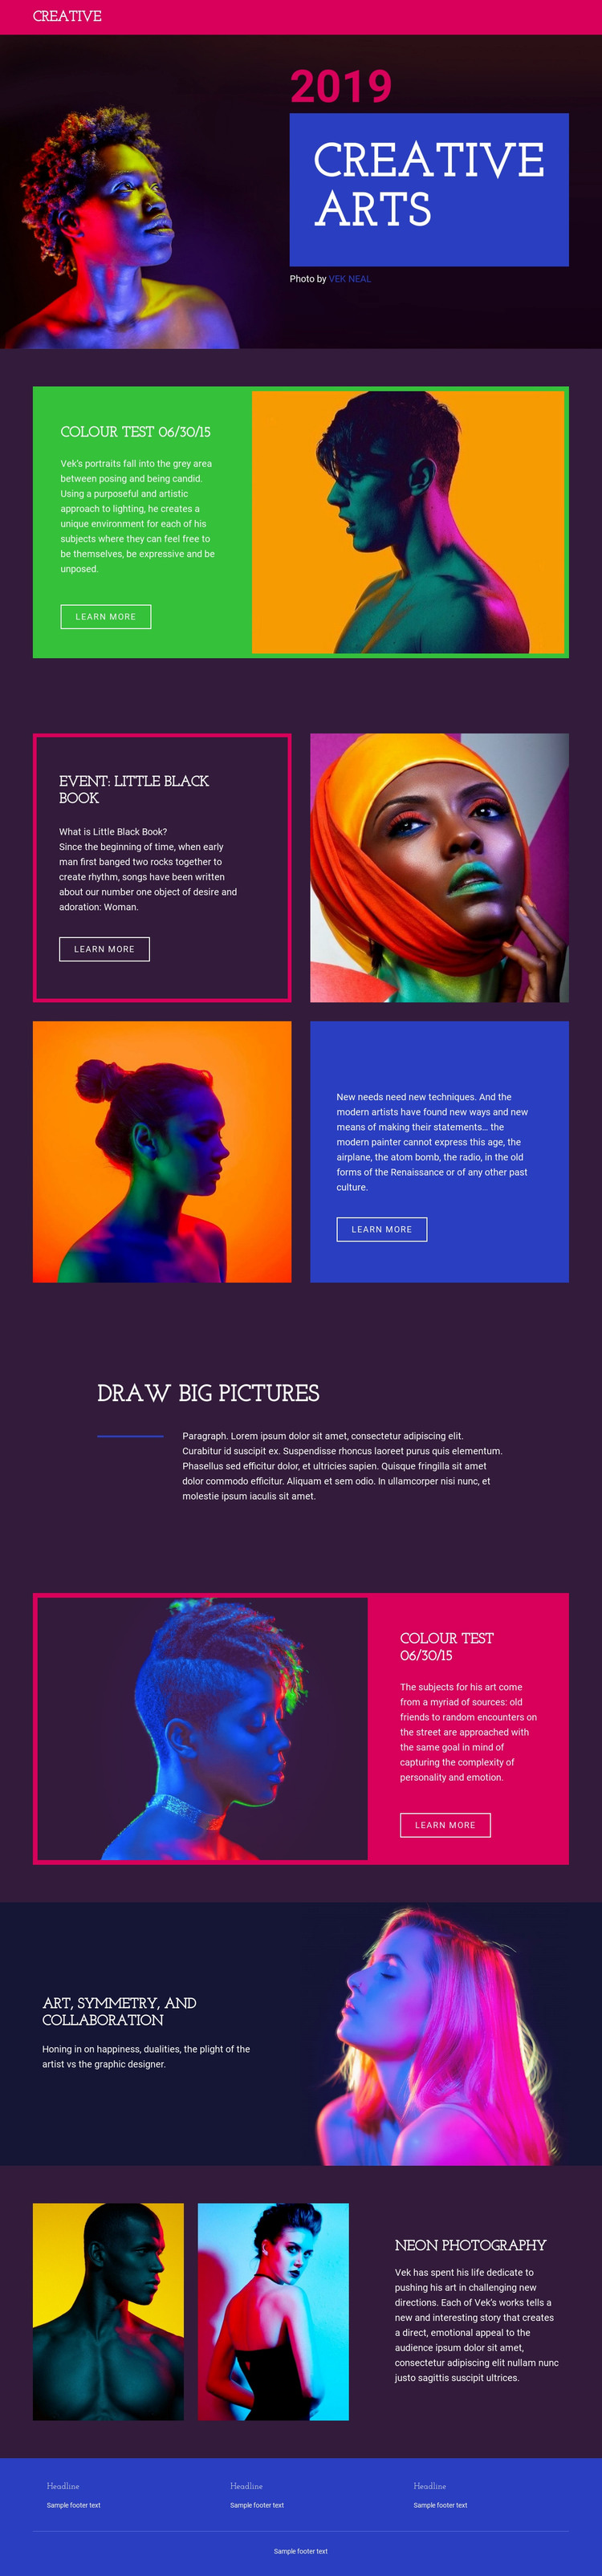 Limited-edition photography Web Design